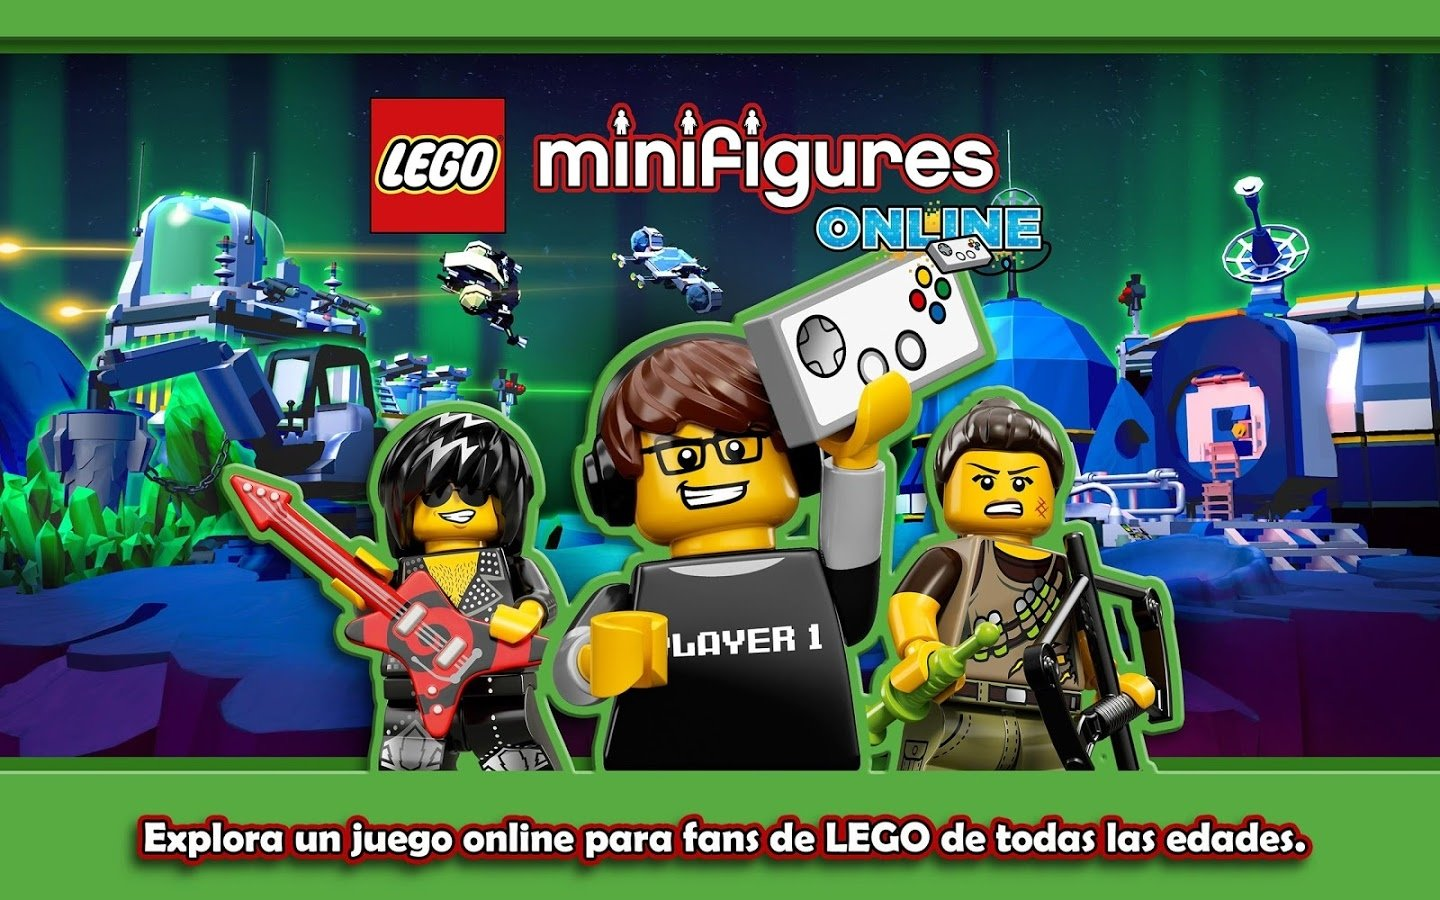 LEGO Minifigures Online Android image 5